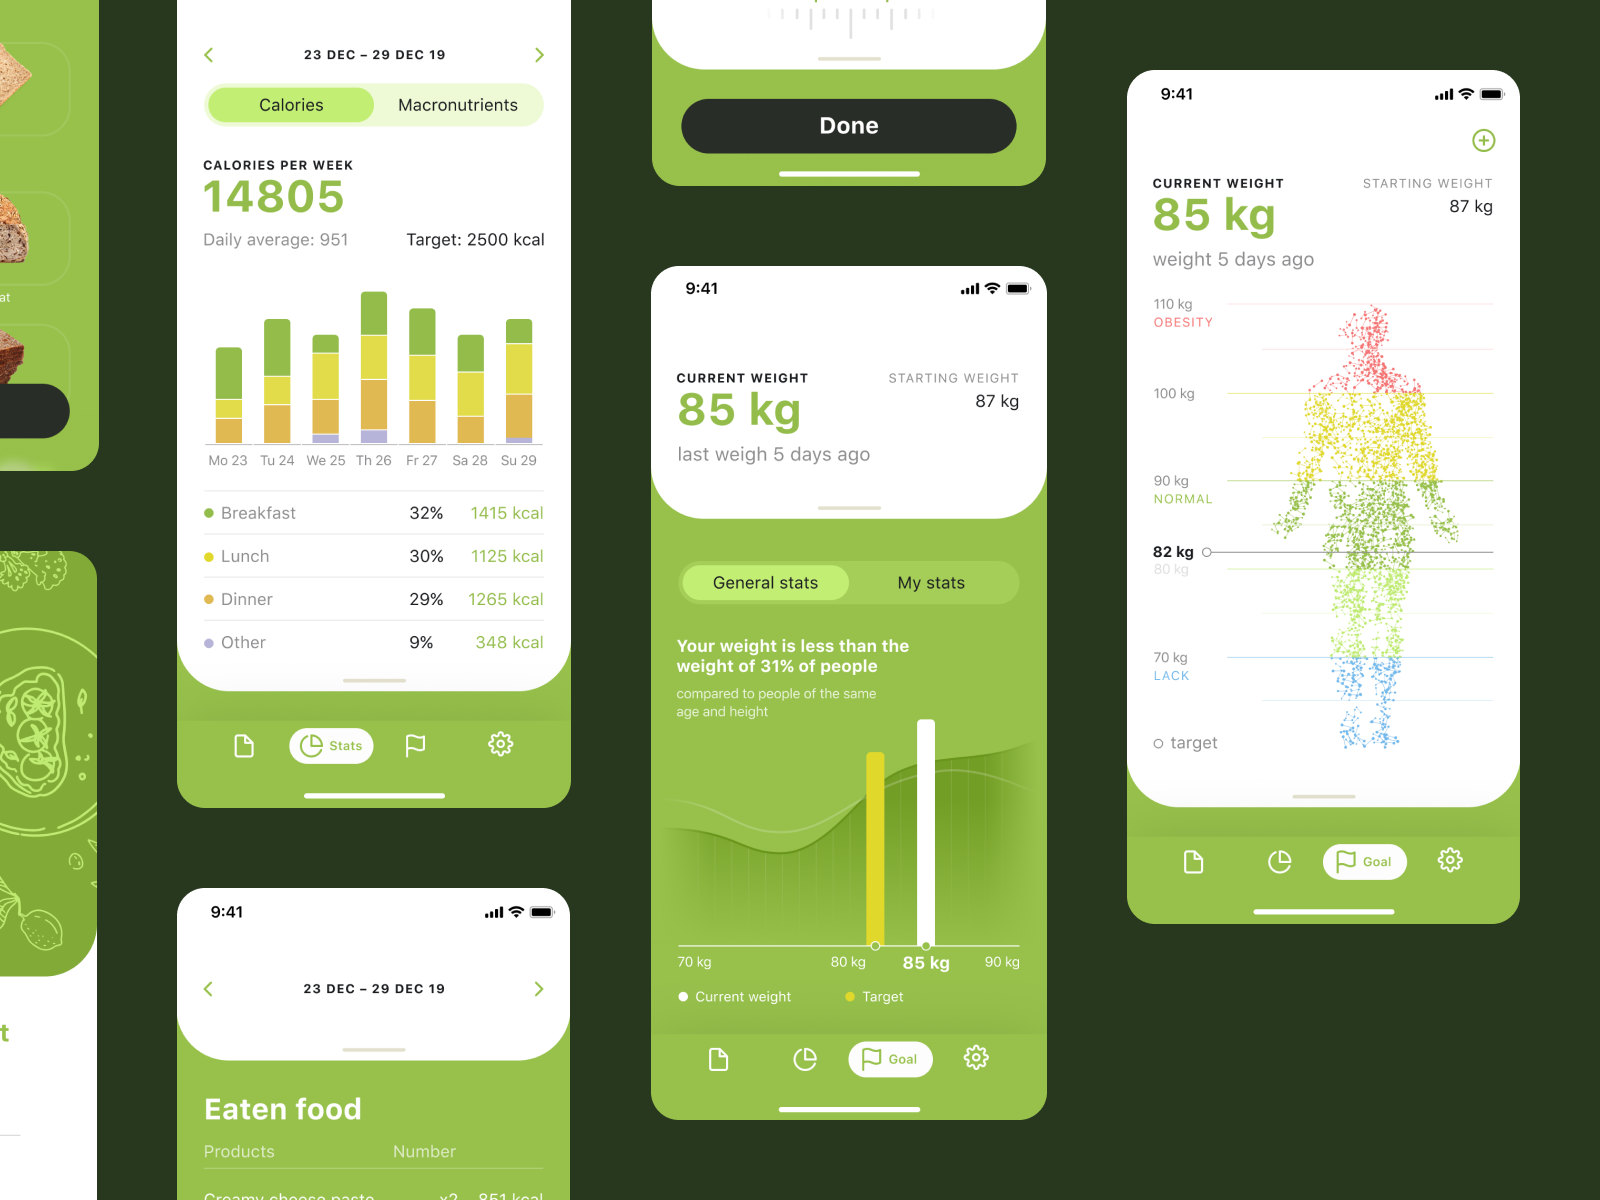 calorie calculator stats screen